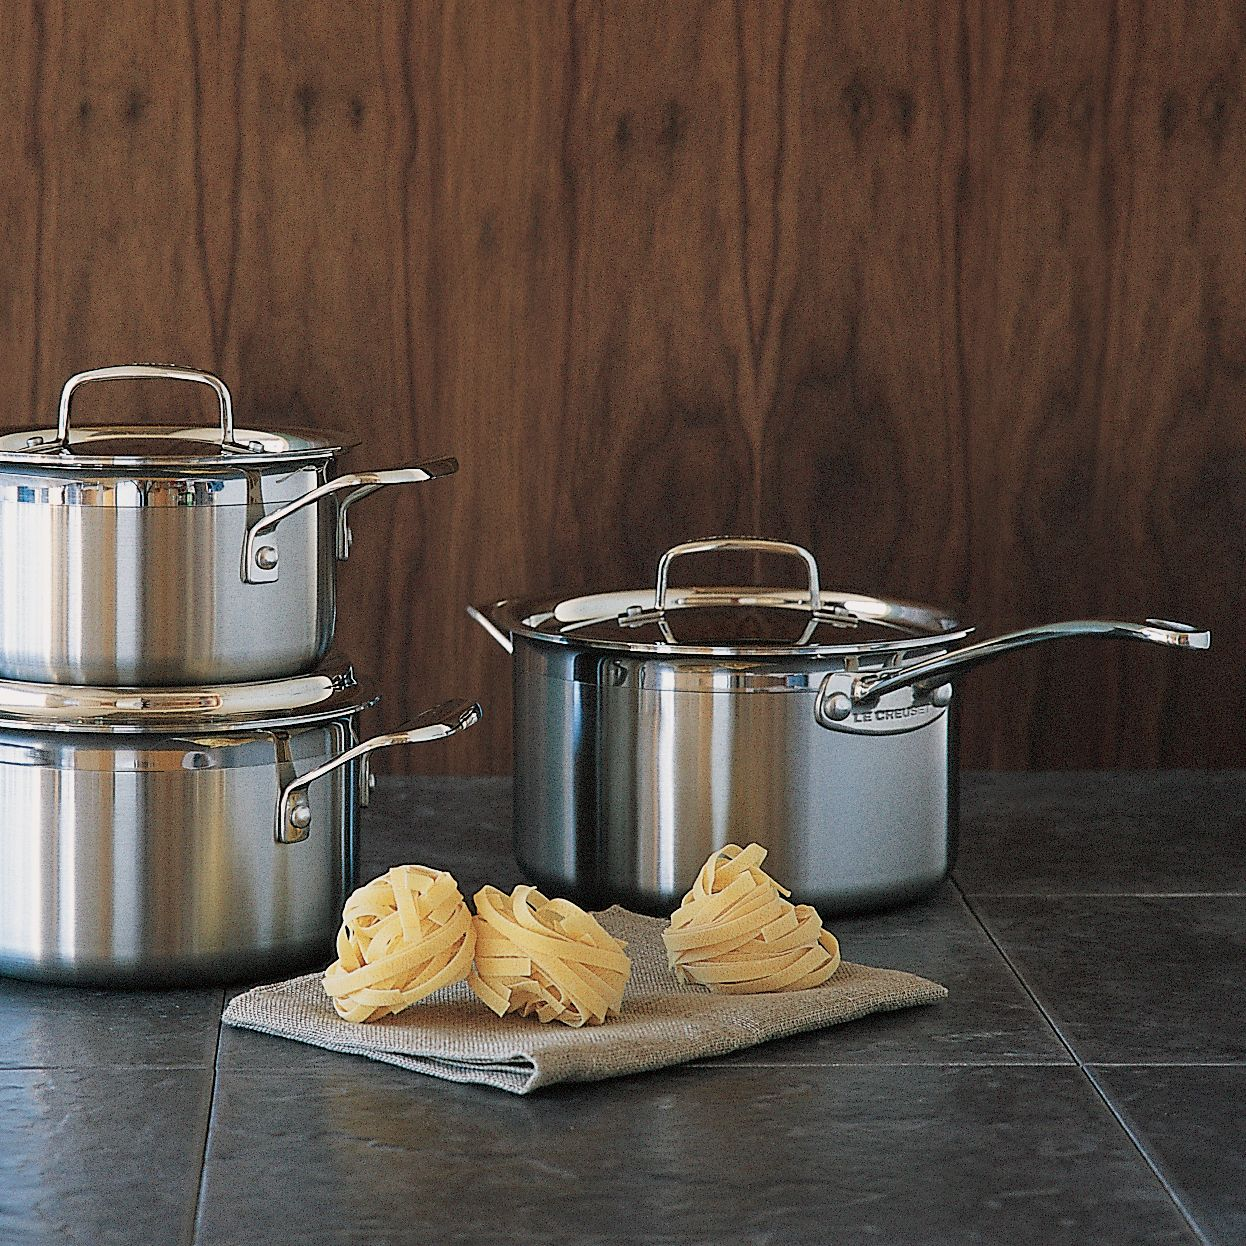 buy cheap le creuset saucepan compare cookware utensils prices for best uk deals